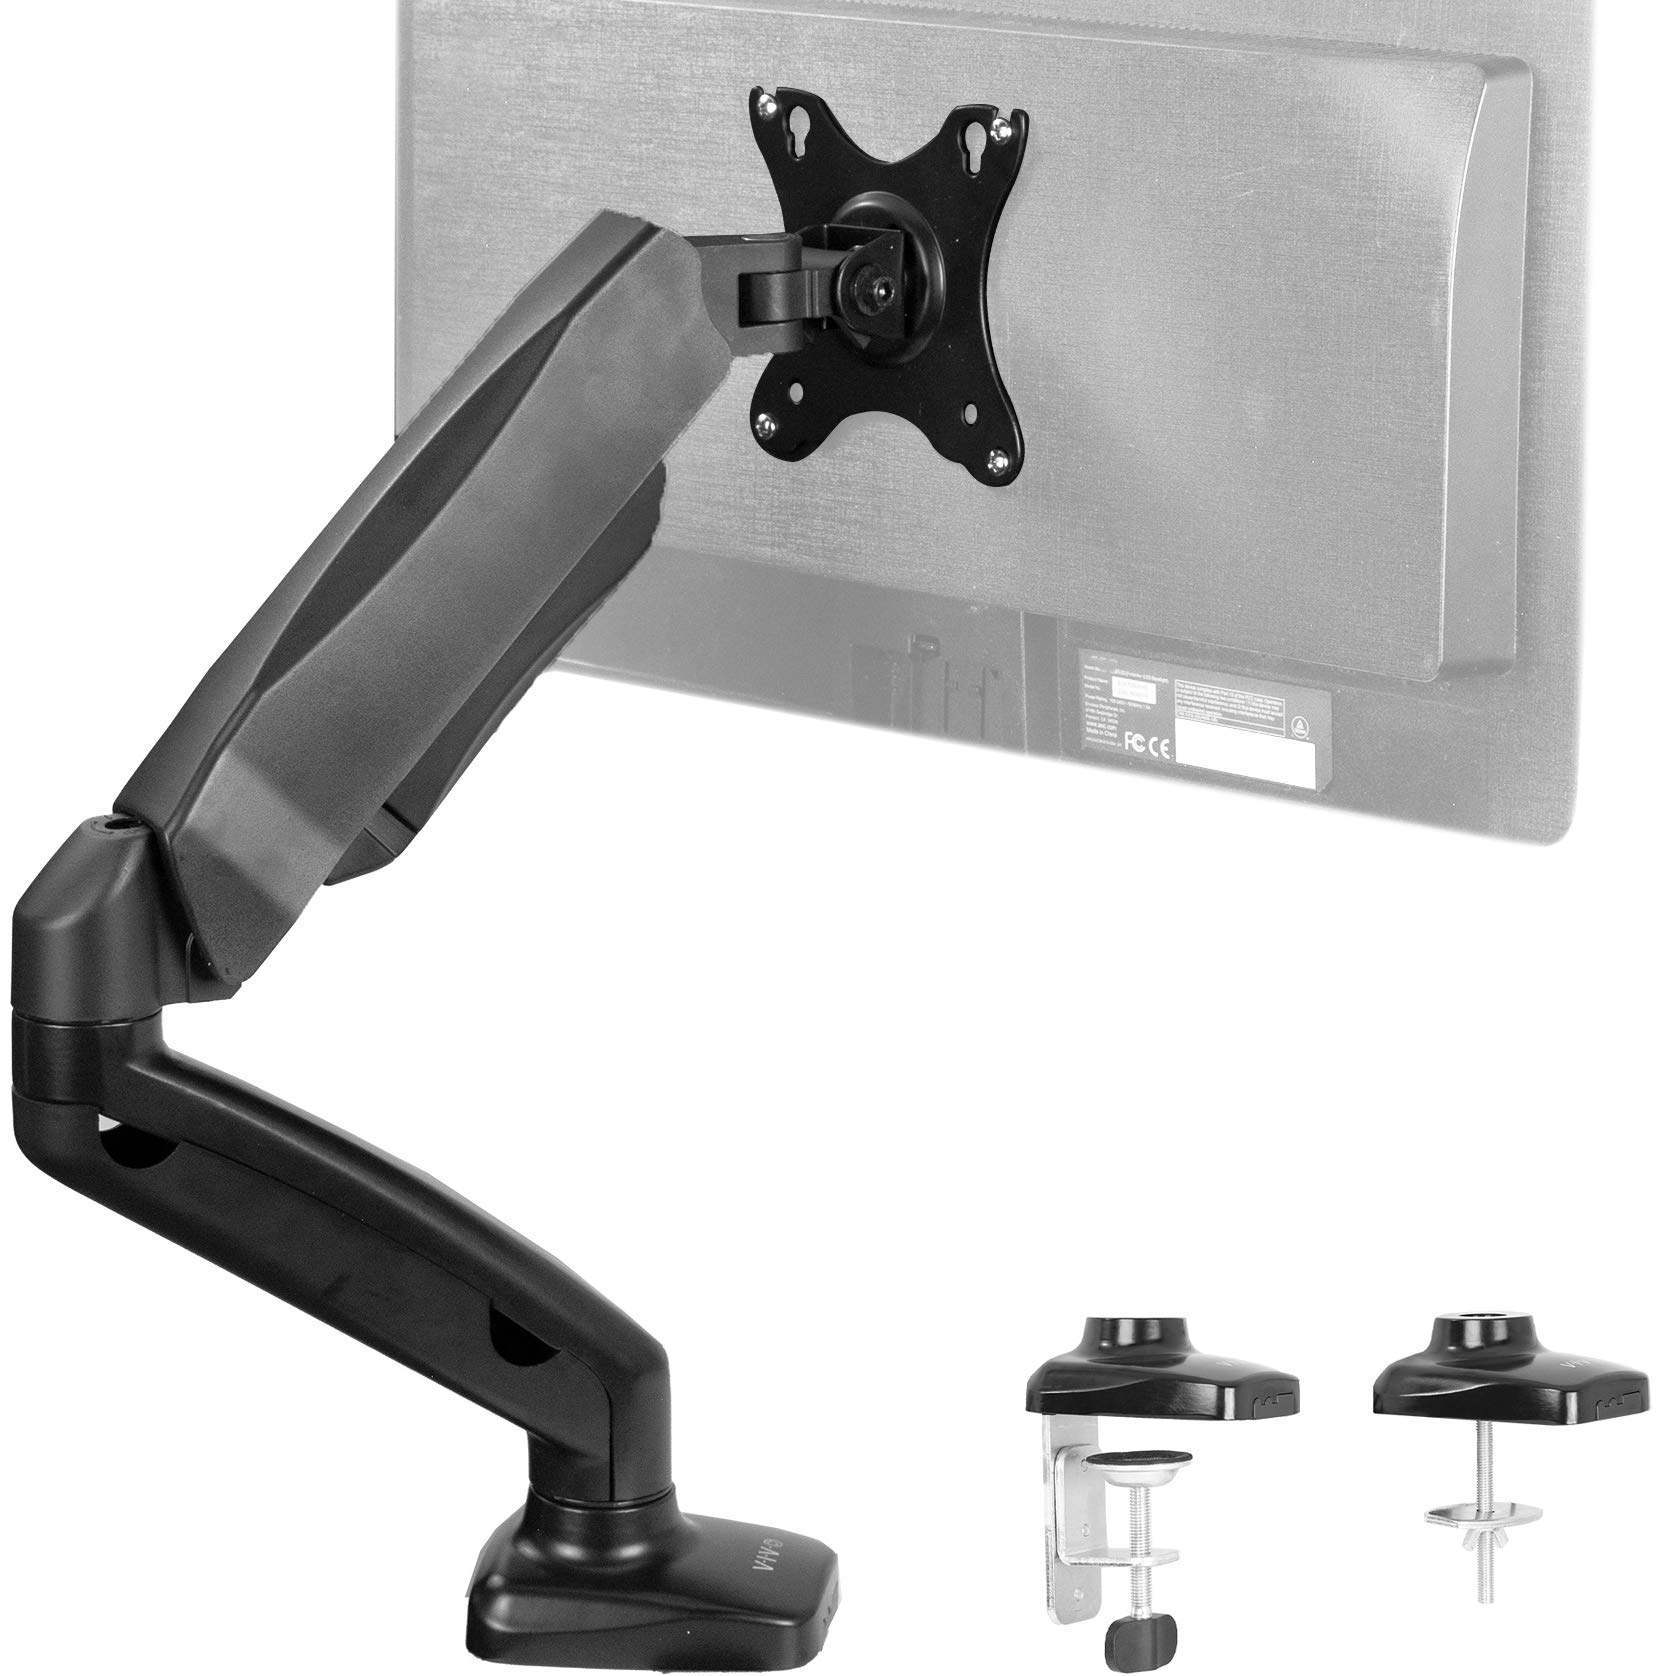 VIVO Height Adjustable Monitor Arm - Single Counterbalance Desk Mount for Screens up to 27 inches | Fully Articulating Black Pneumatic Universal VESA Stand (STAND-V001O) by VIVO